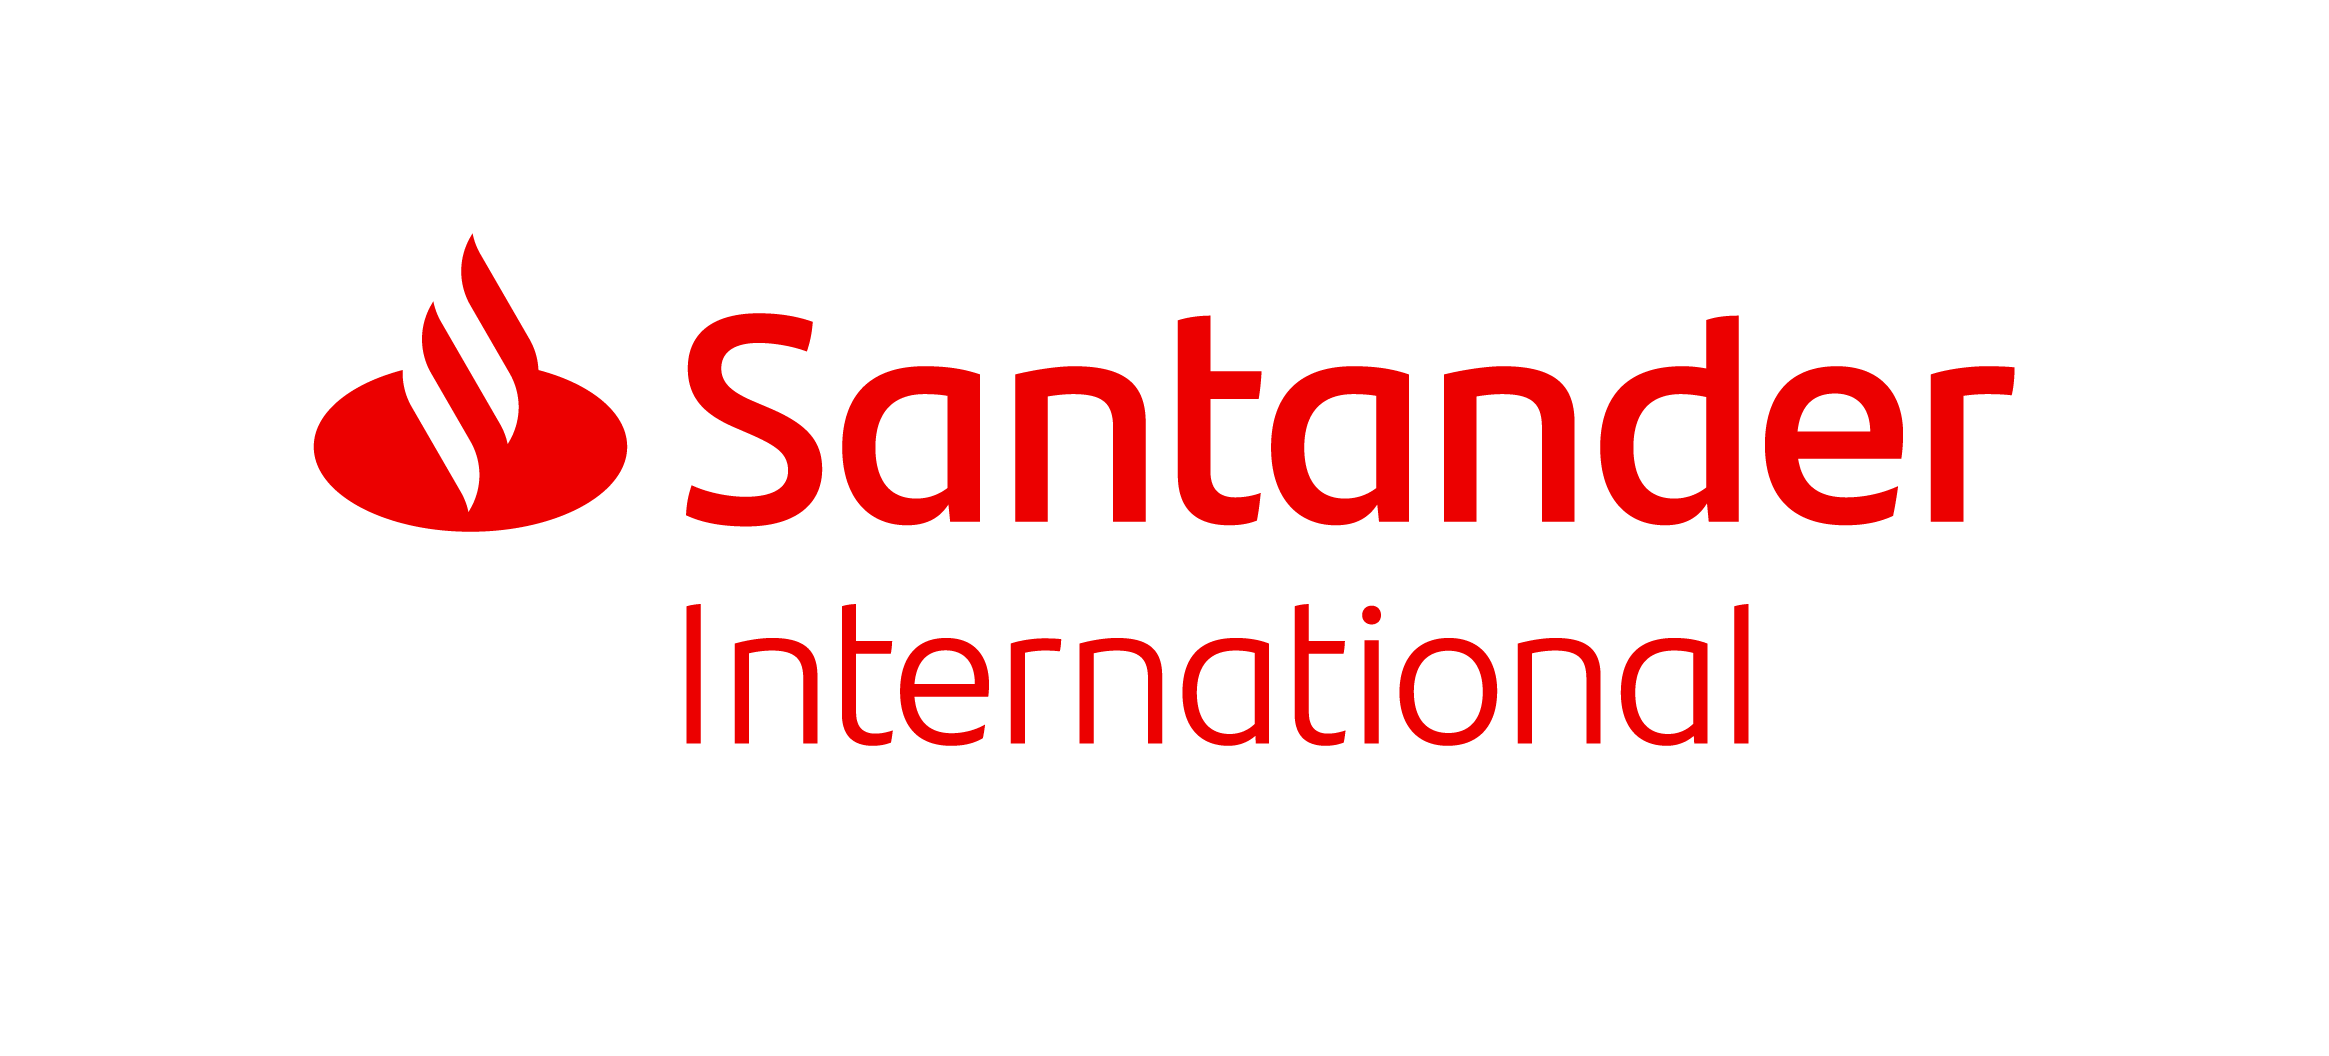 FA SANTANDER INTERNATIONAL CV POS RGB